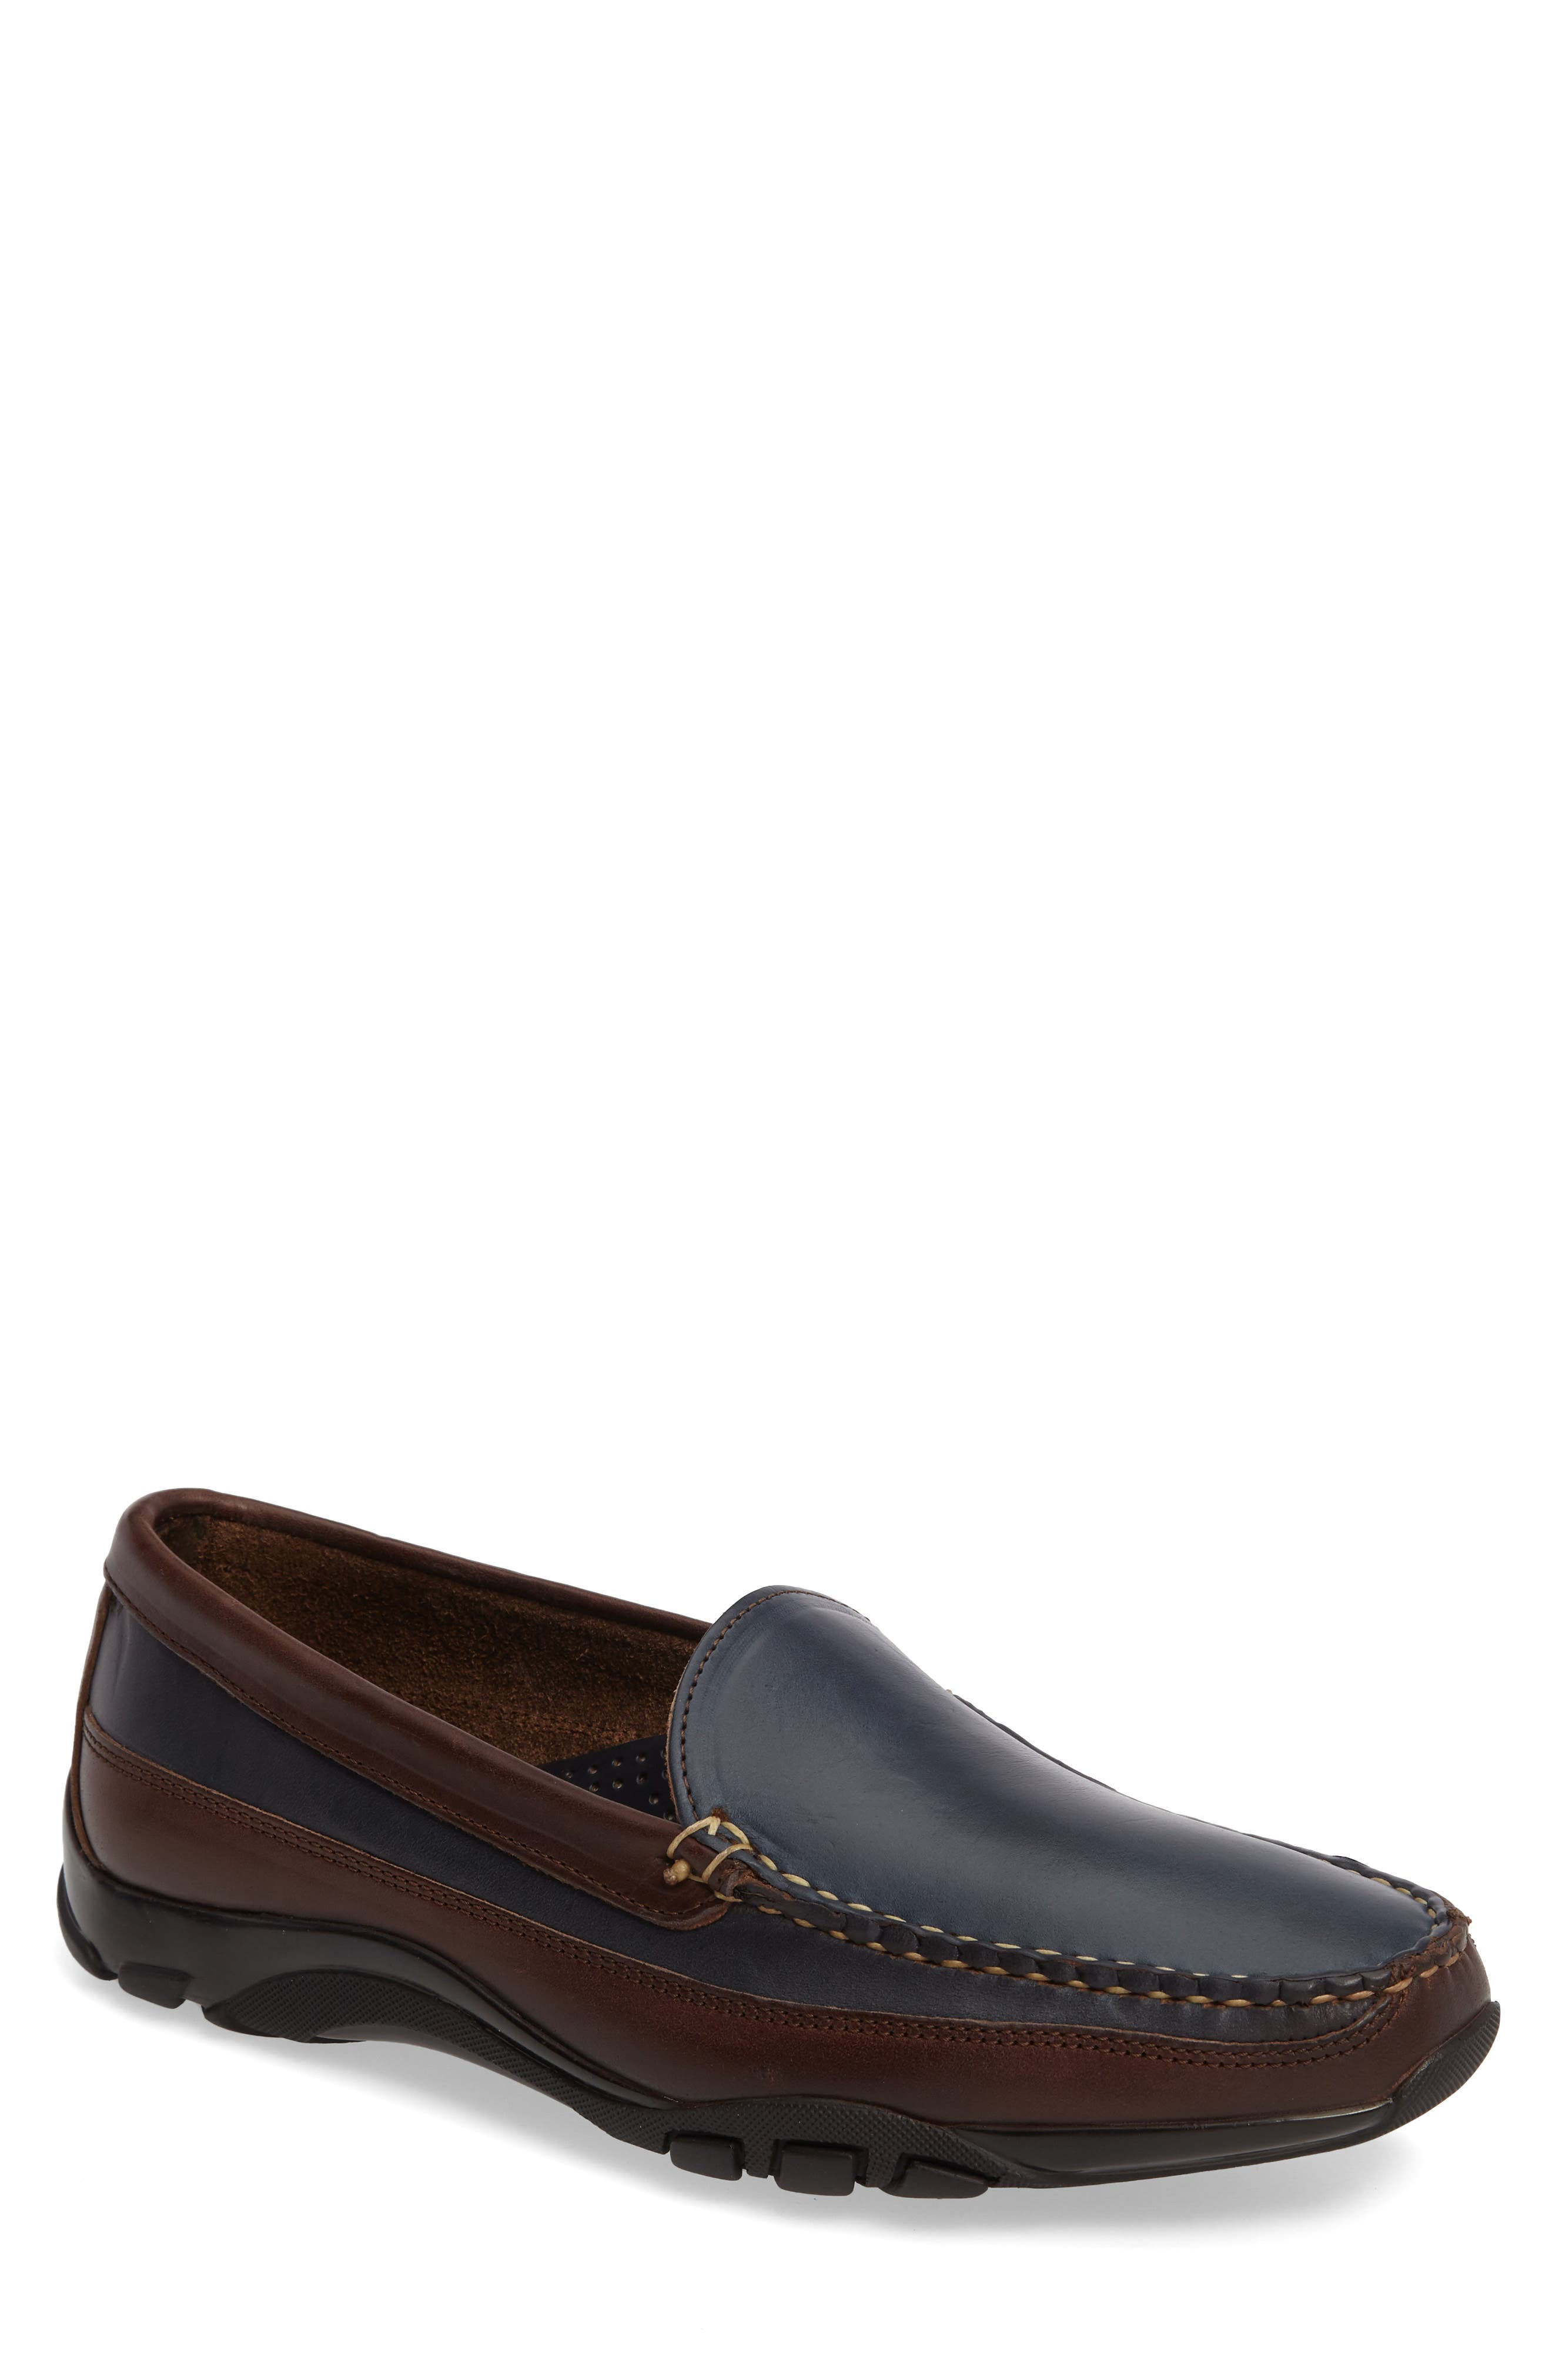 861c66032ec Allen Edmonds - Men s Casual Fashion Shoes and Sneakers